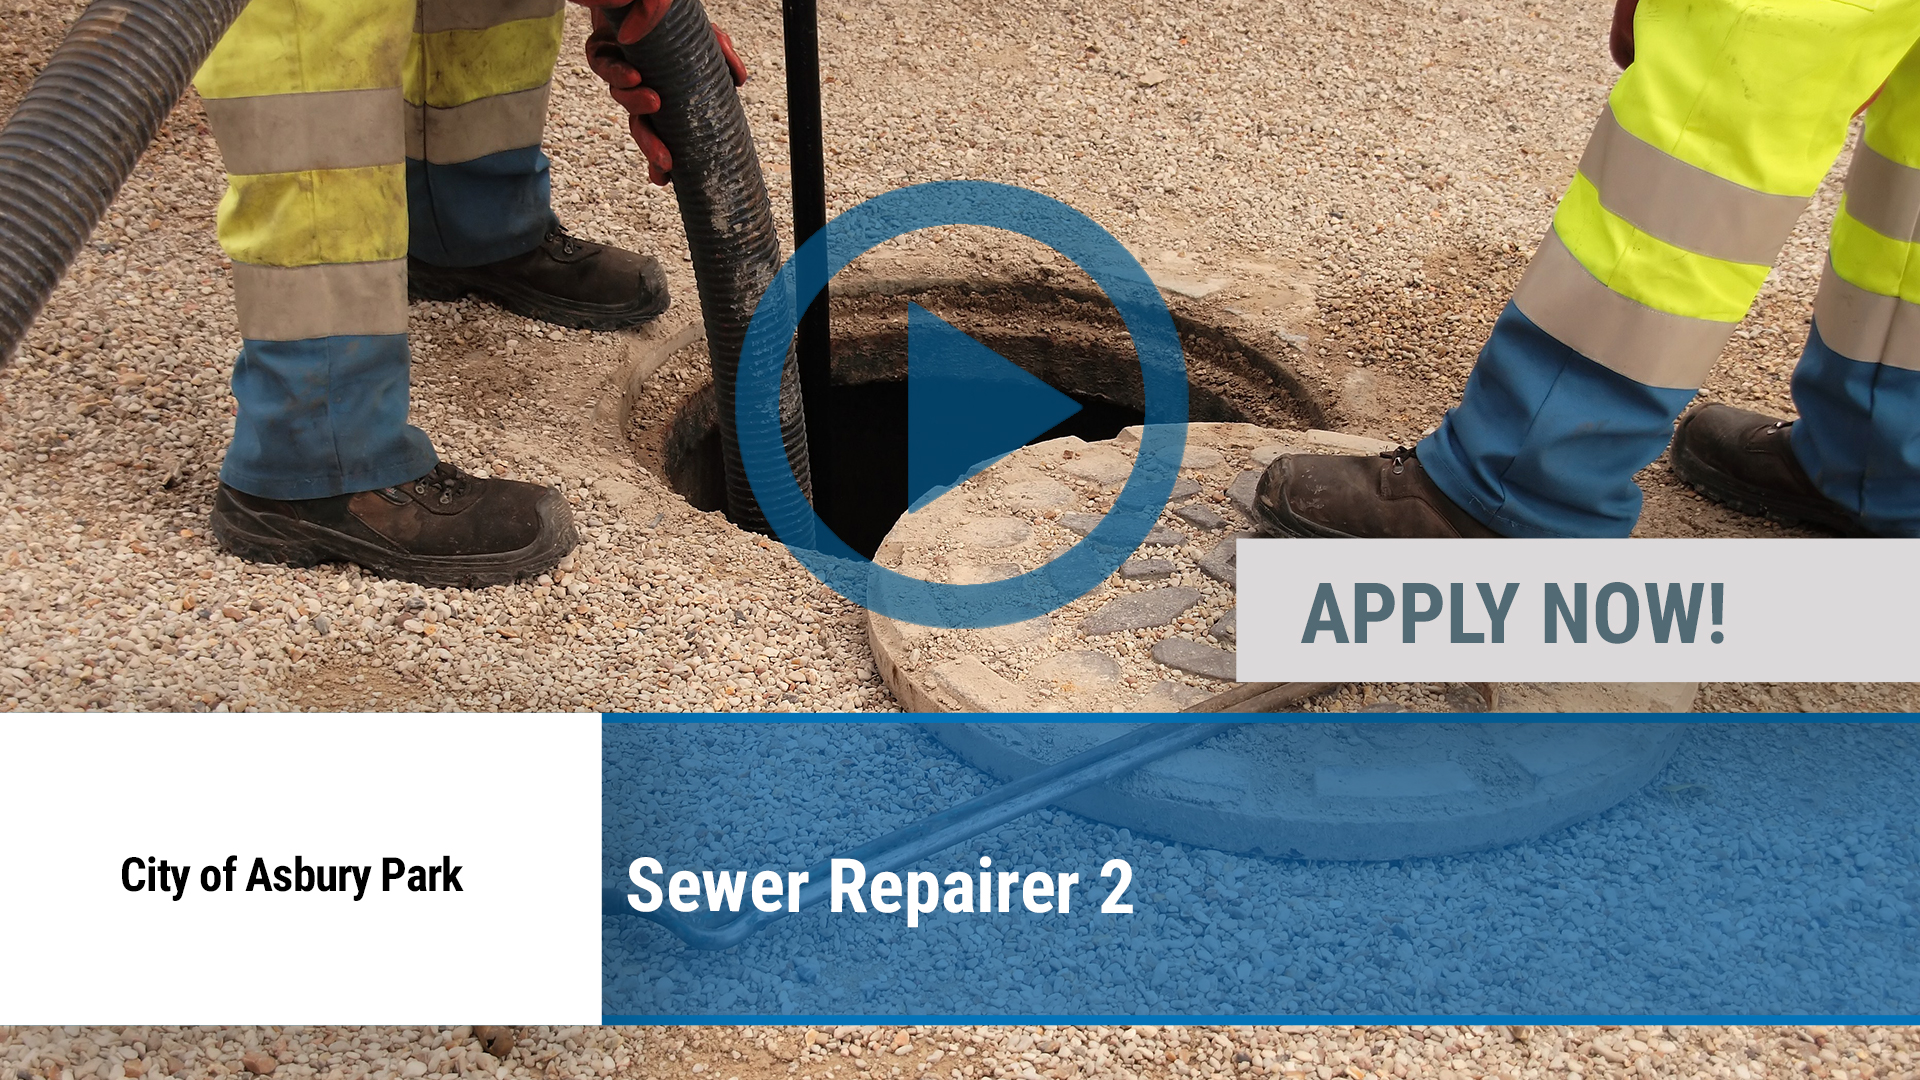 Watch our careers video for available job opening Sewer Repairer 2 in Asbury Park, NJ